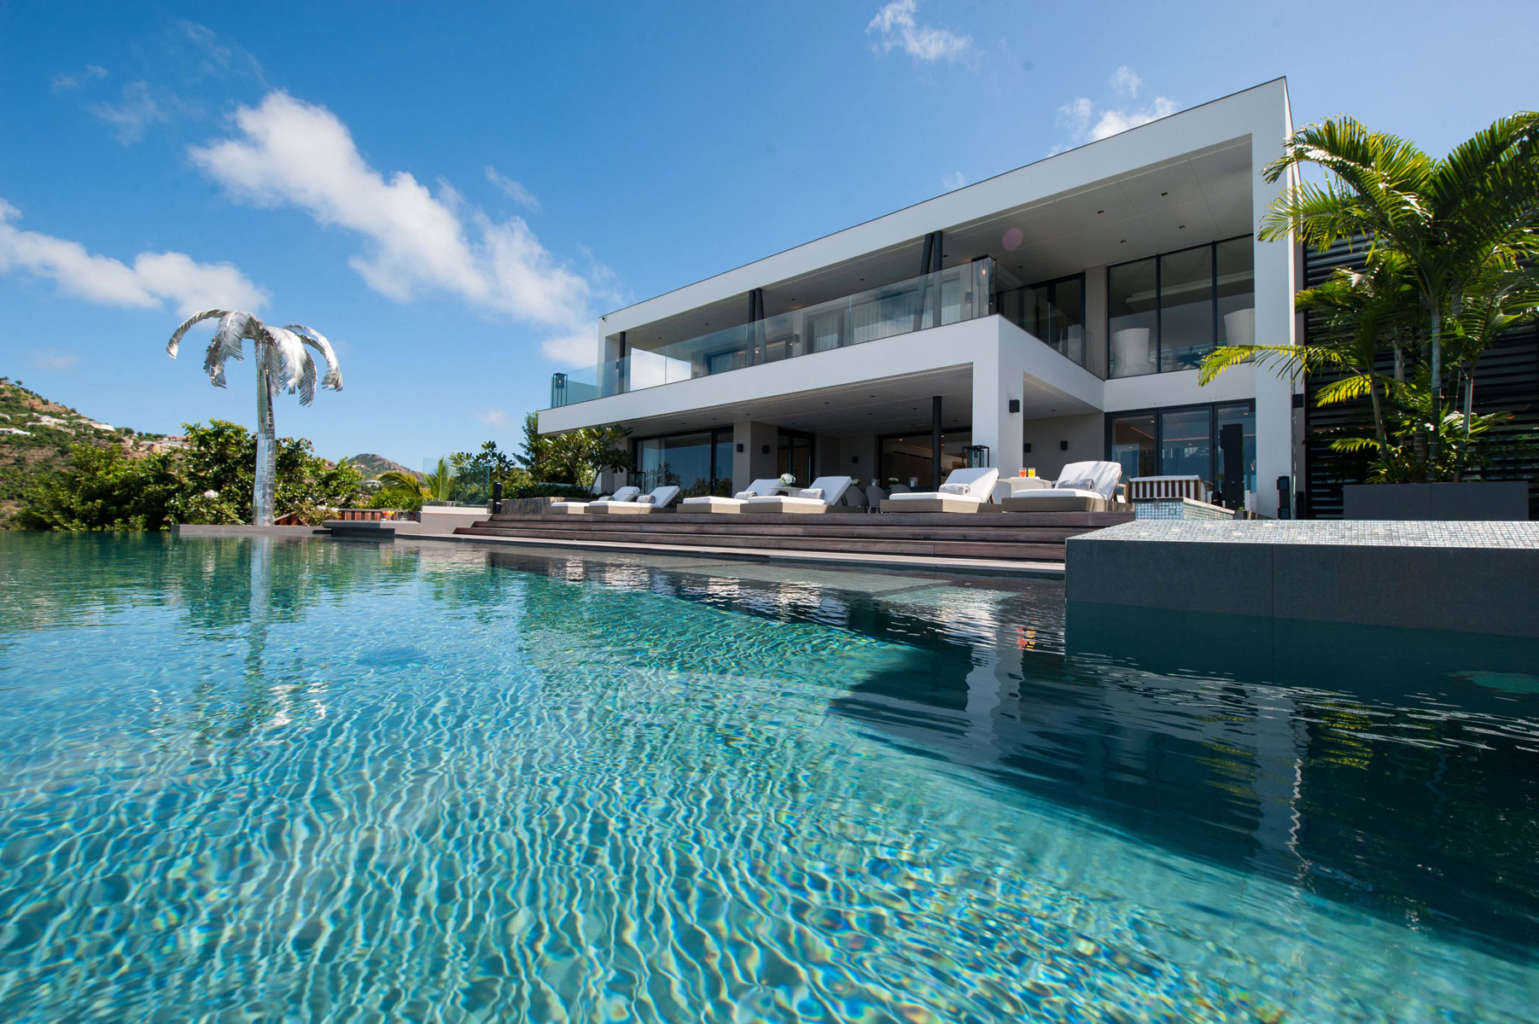 Villa Neo - 2 Levels Fully Air Conditioned Villa Rental St Barth with Panoramic View of St Jean bay and the Ocean - Outside View